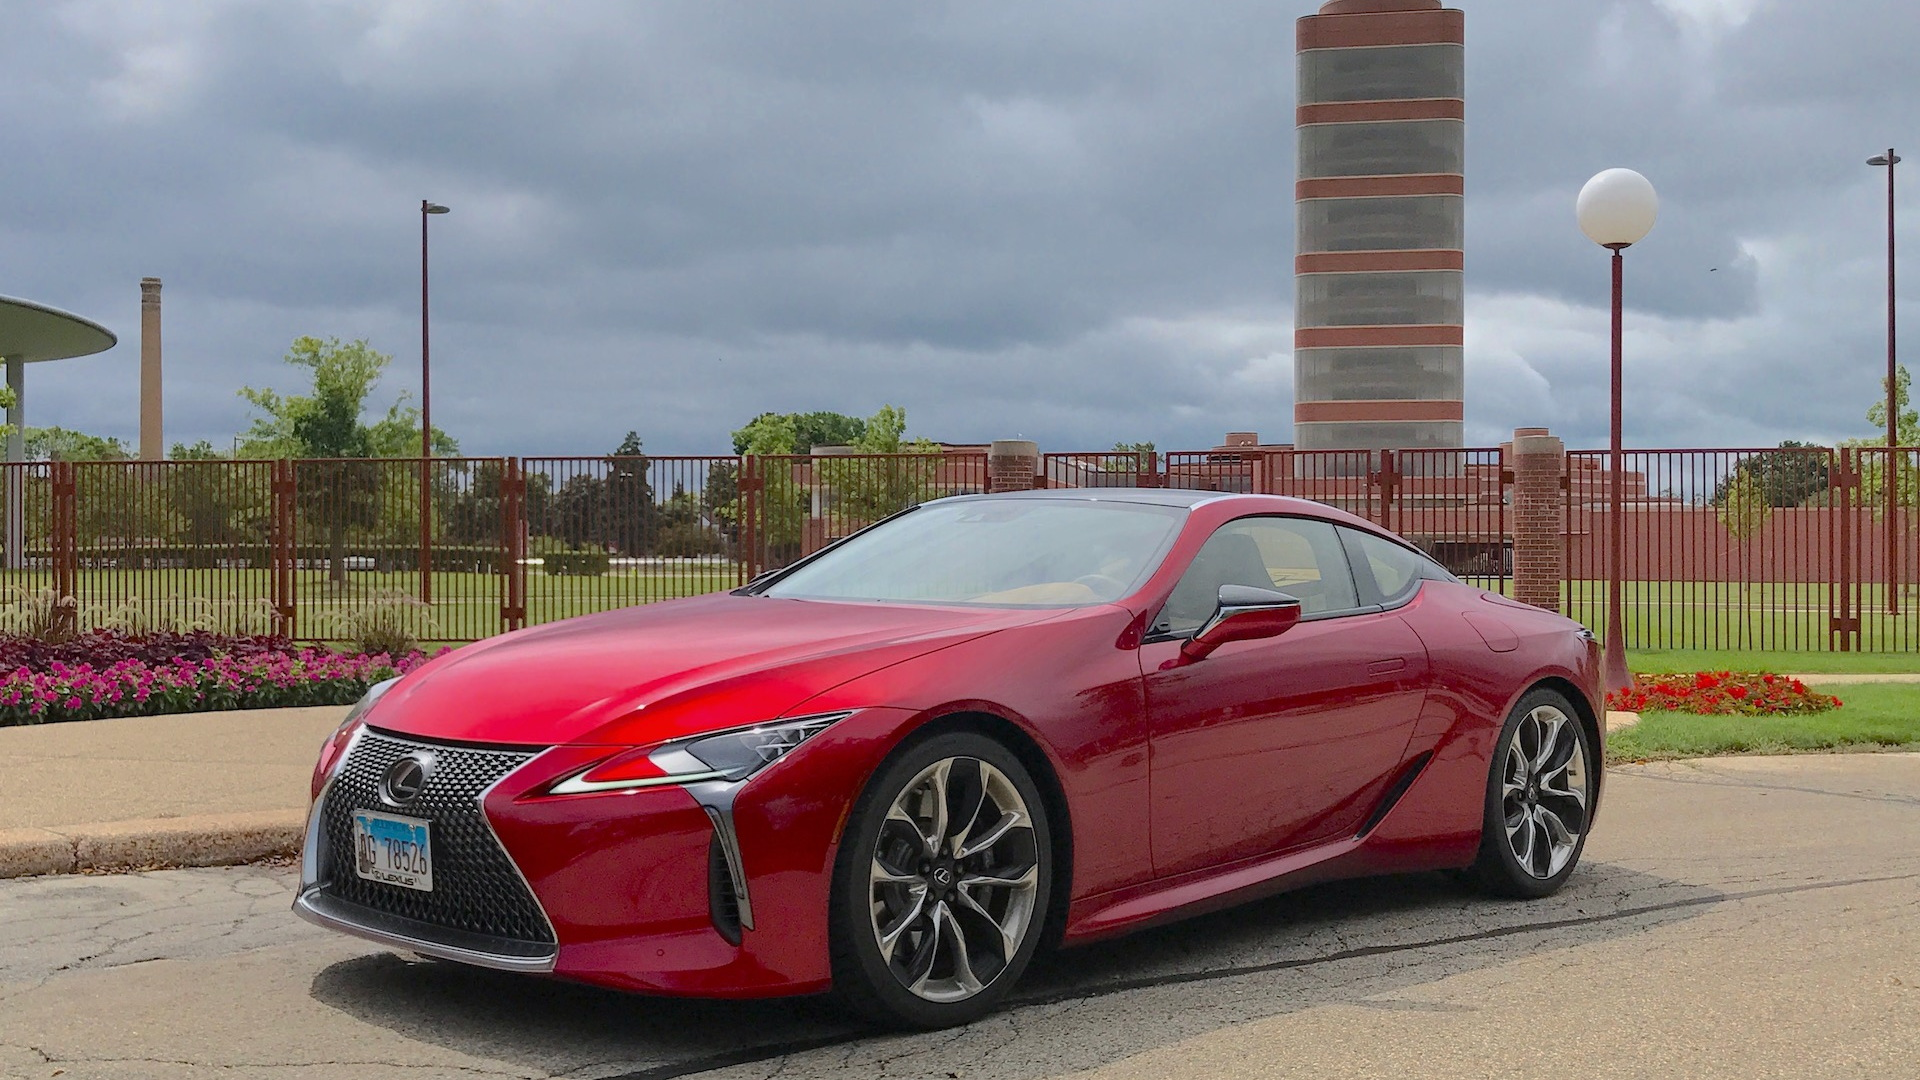 2018 Lexus LC 500 at the S.C. Johnson Research Tower